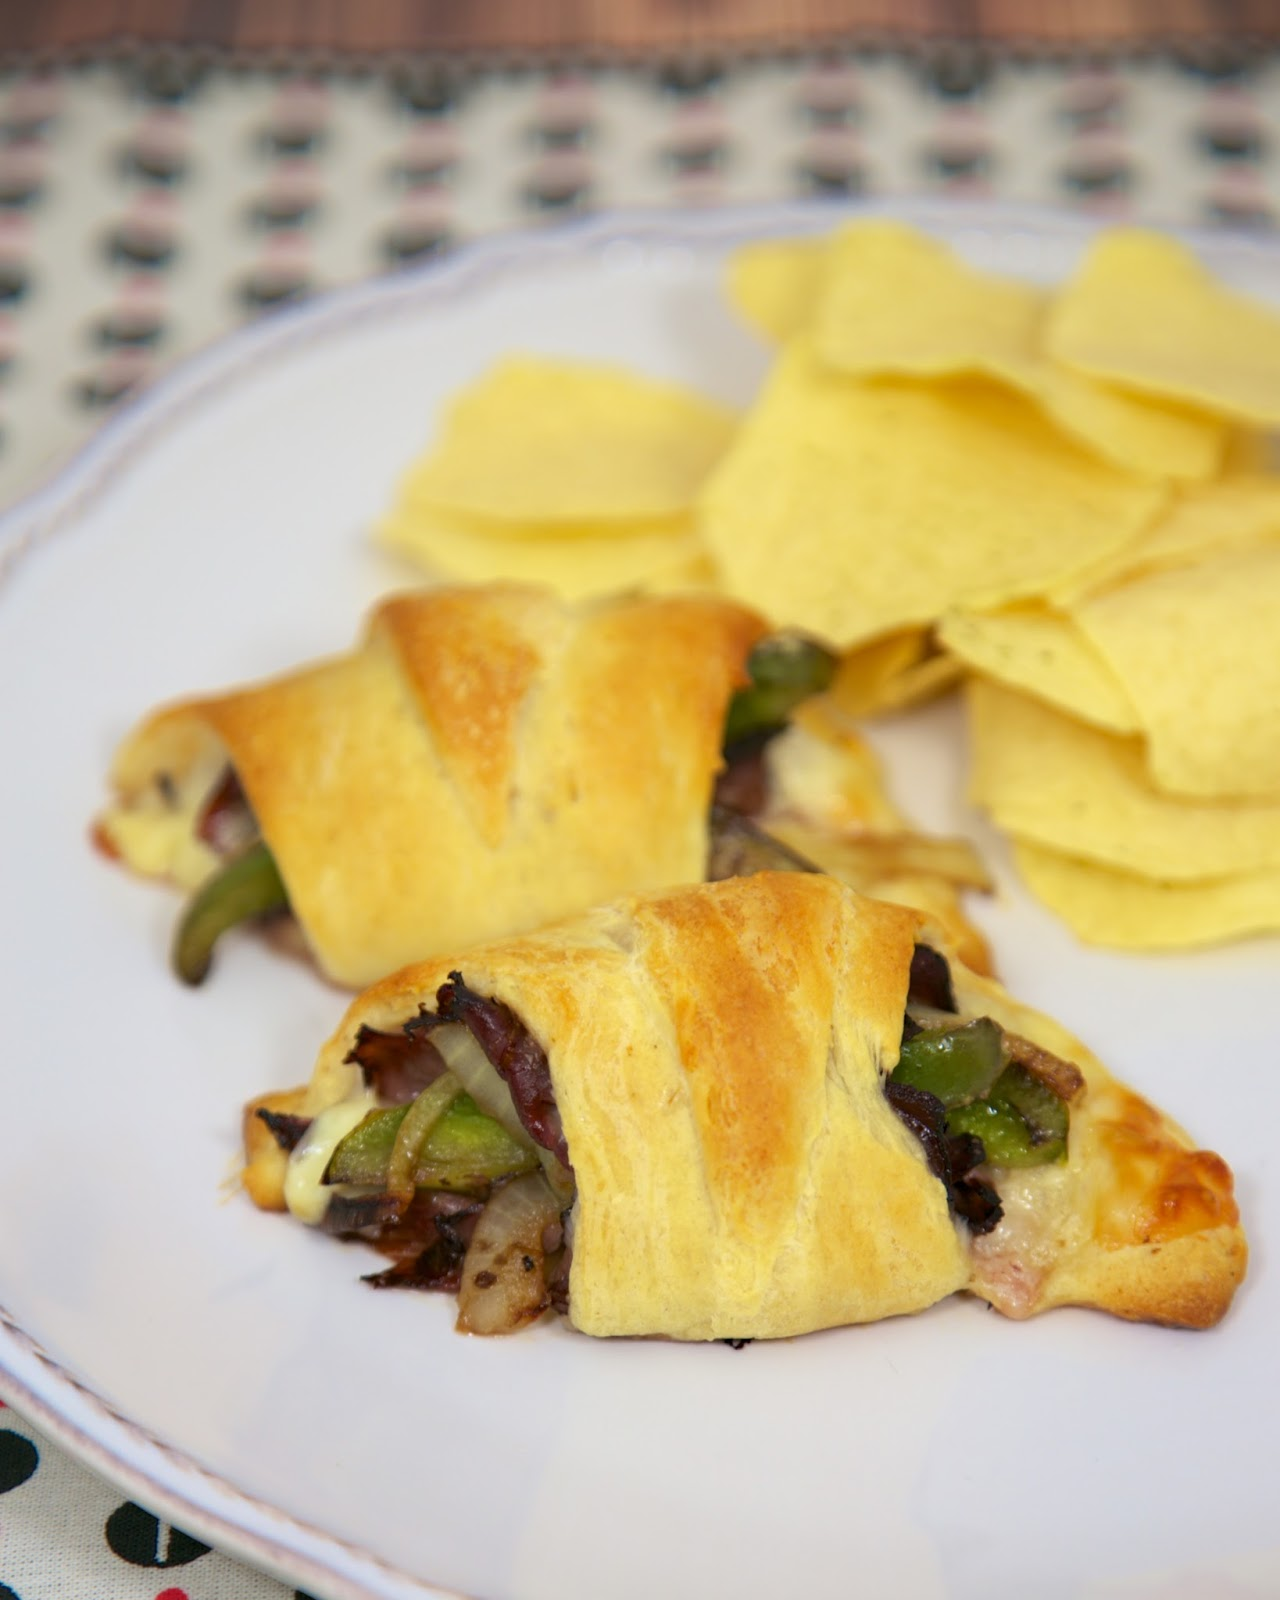 Philly Cheesesteak Crescents Recipe - deli roast beef, provolone, horseradish, onions and peppers wrapped in crescent rolls and baked - hot and ready in 15 minutes. A fun and quick lunch or dinner sandwich.